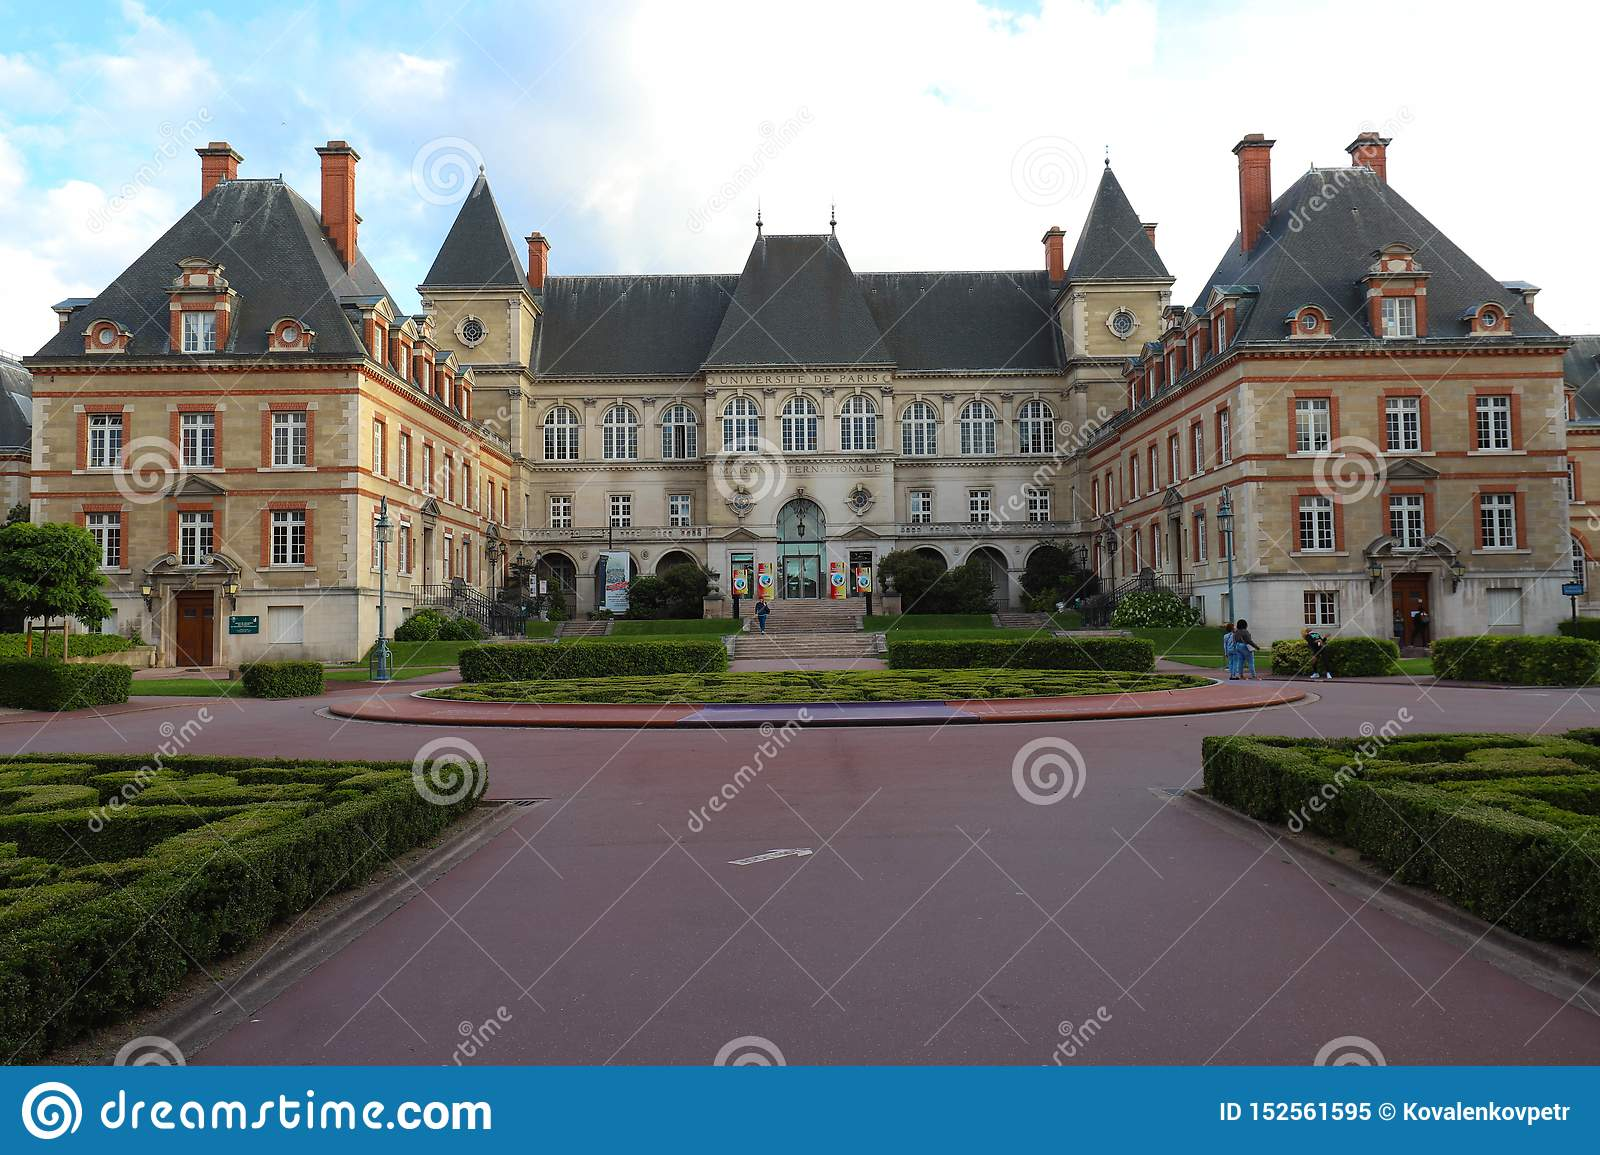 Cite Internationale Universitaire De Paris Is A Private Park And Foundation Located In Paris France Editorial Image Image Of Housing Exterior 152561595